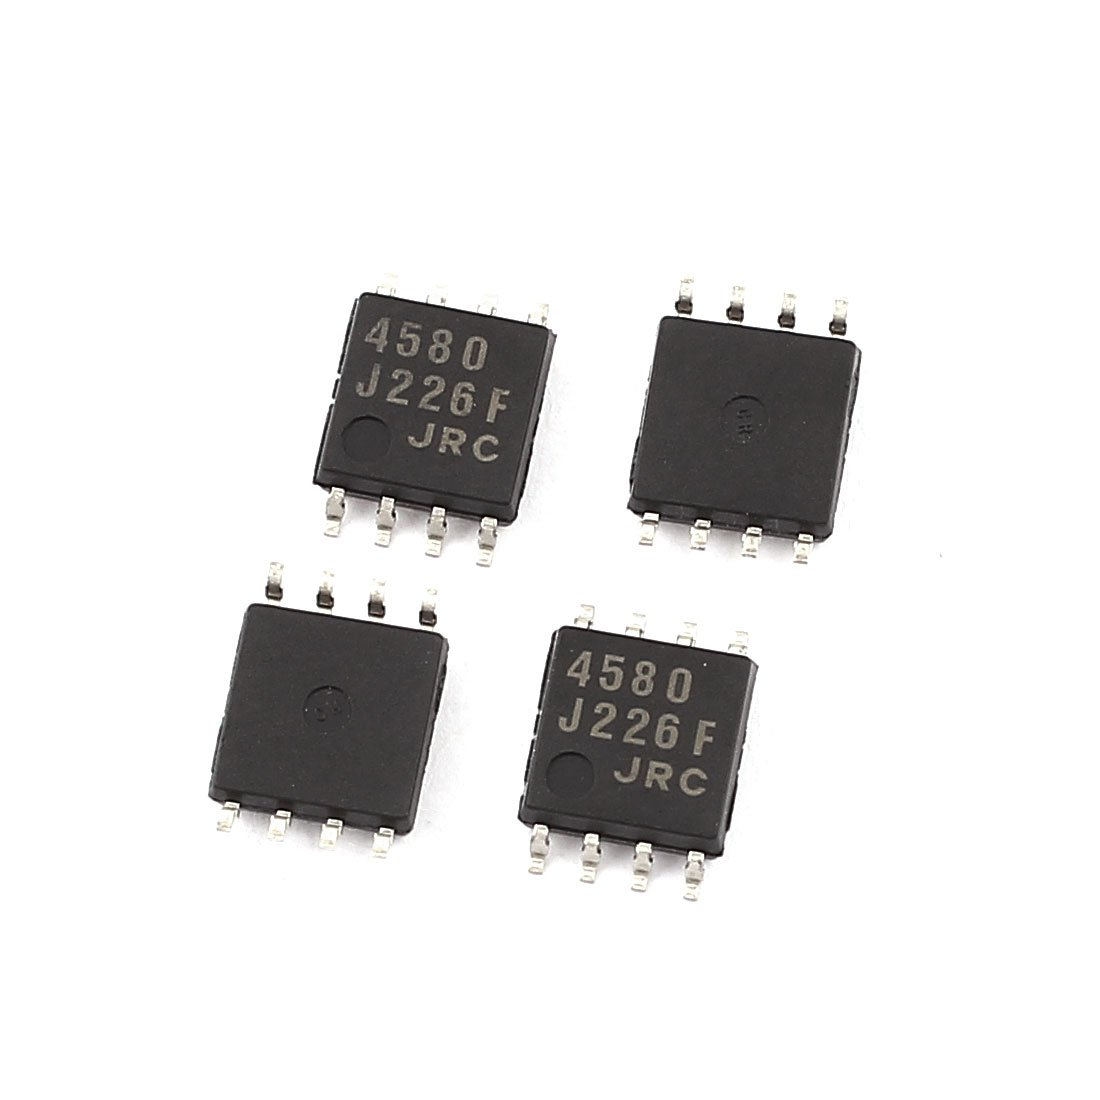 Uxcell A15091600ux0674 Jrc4580 8 Pin Pcb Surface Mount Smd Smt Ic Dip Pcba Suitable For Camera Circuit Board And Electronic Lcd Power Chip 4 Piece Industrial Scientific